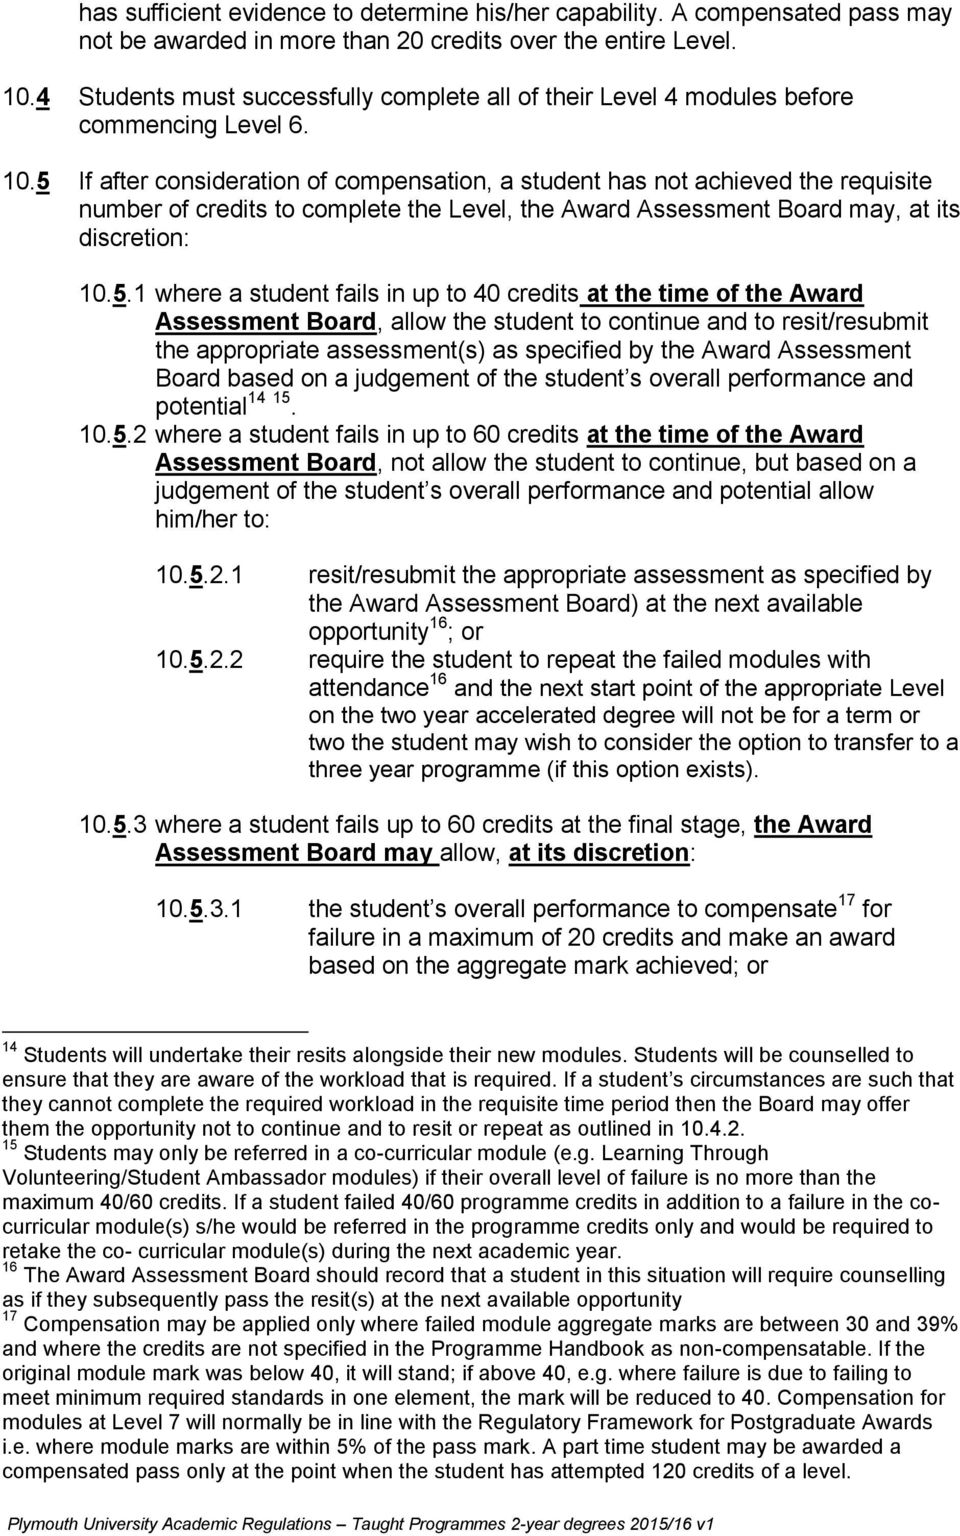 5 If after consideration of compensation, a student has not achieved the requisite number of credits to complete the Level, the Award Assessment Board may, at its discretion: 10.5.1 where a student